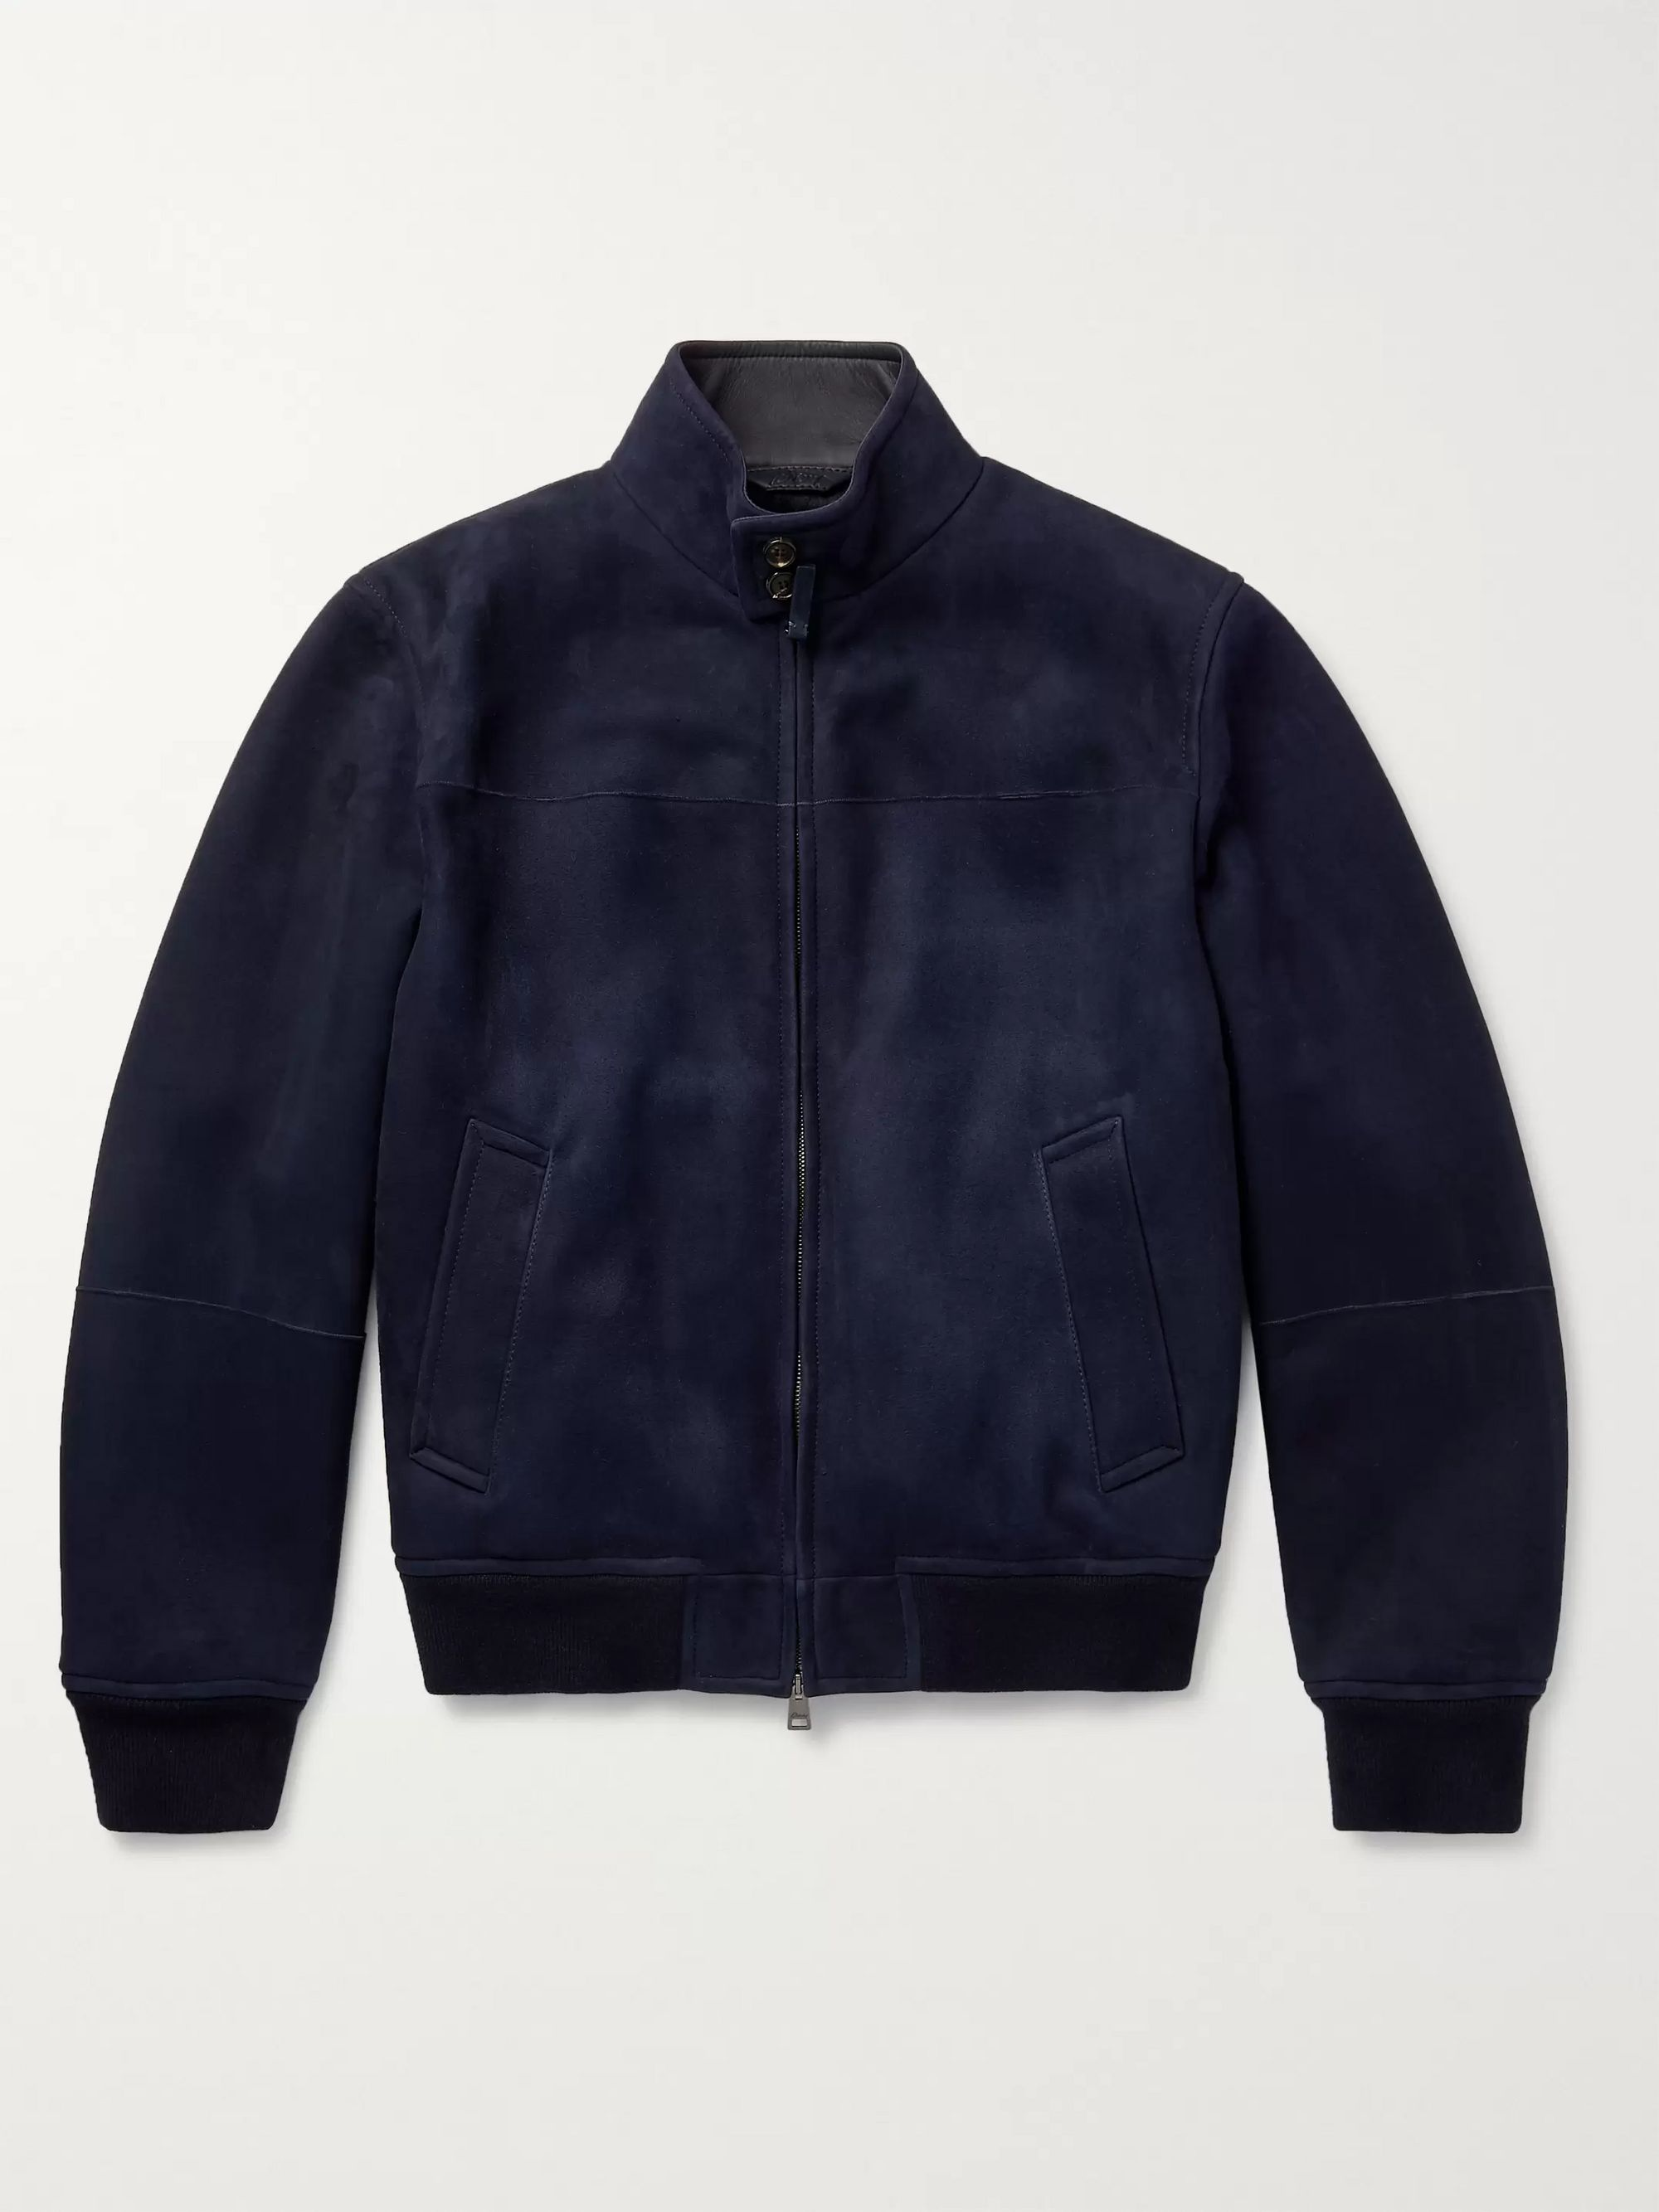 Shearling Bomber Jacket by Mr Porter